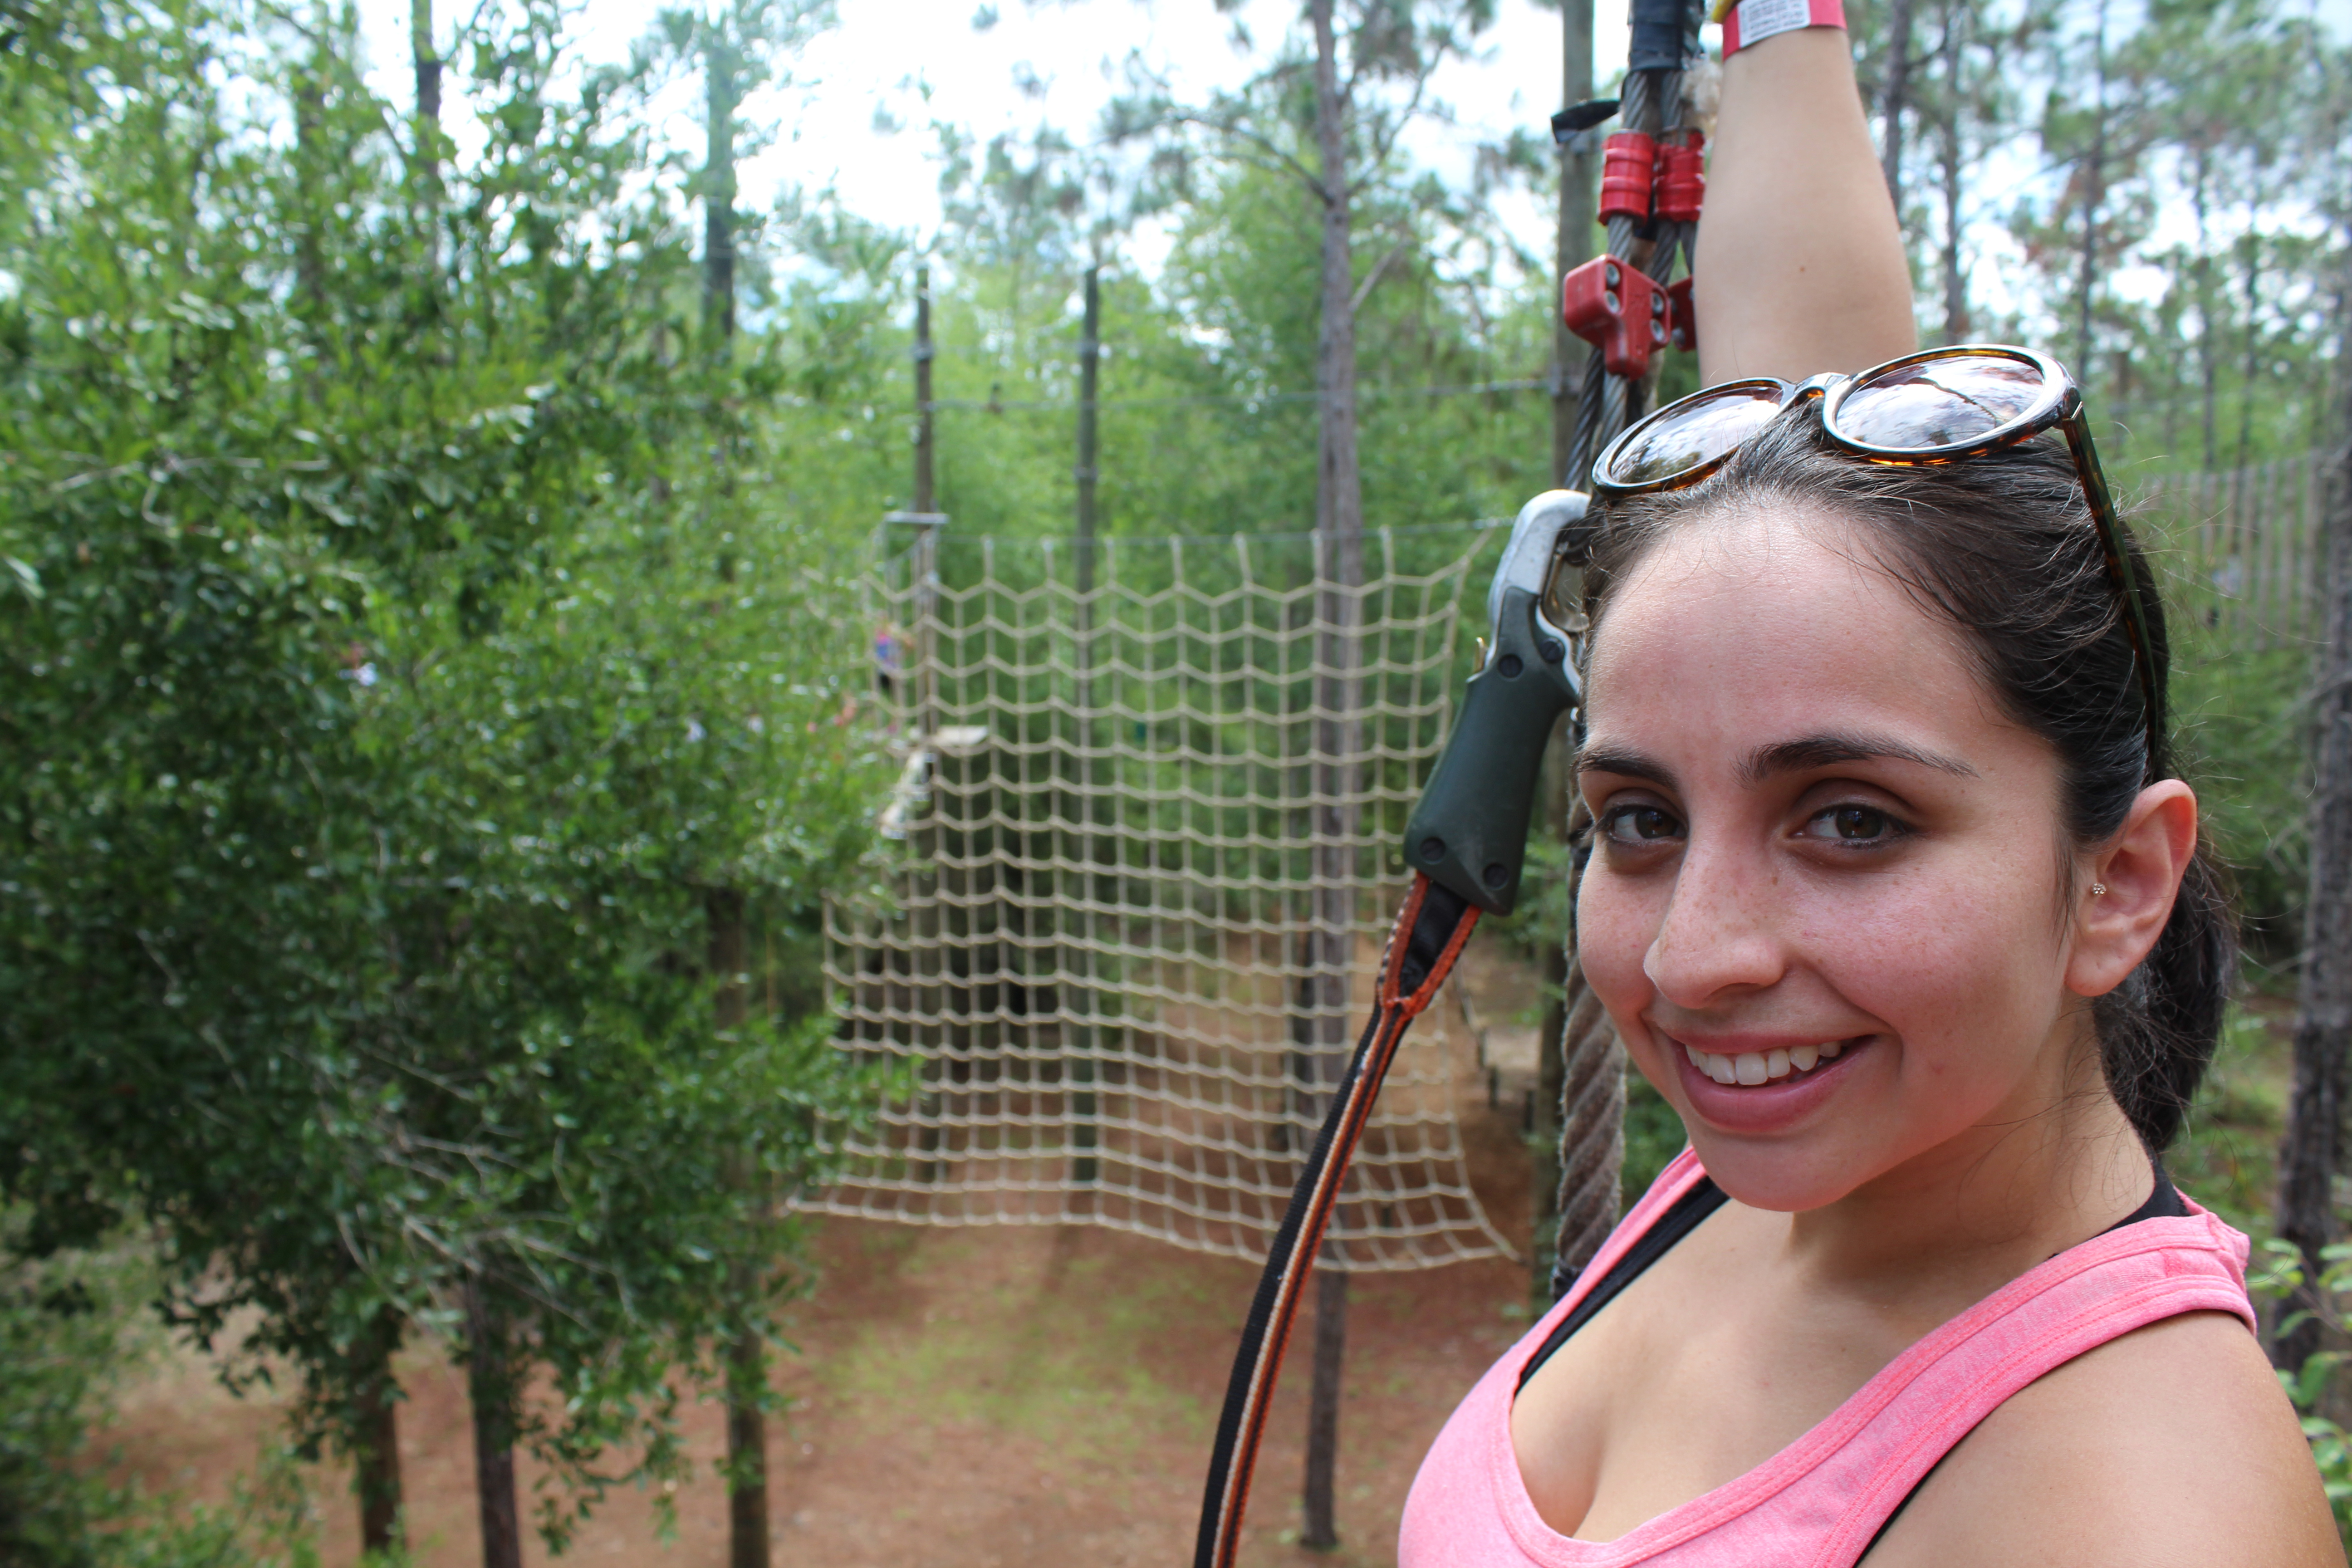 Guest smiling while climbing the ropes course at Orlando Tree Trek.